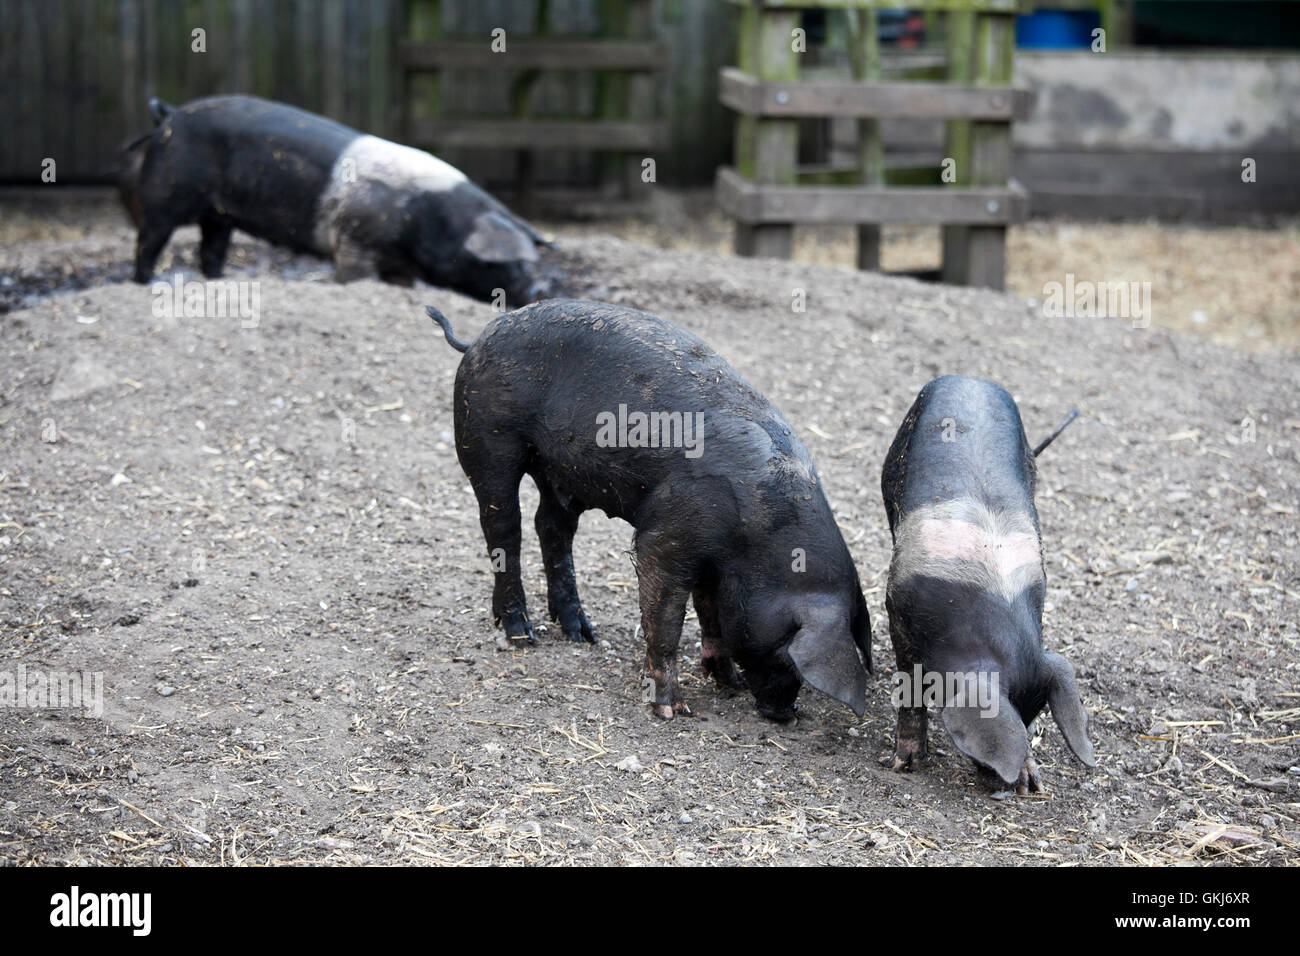 young black pigs at farm - Stock Image